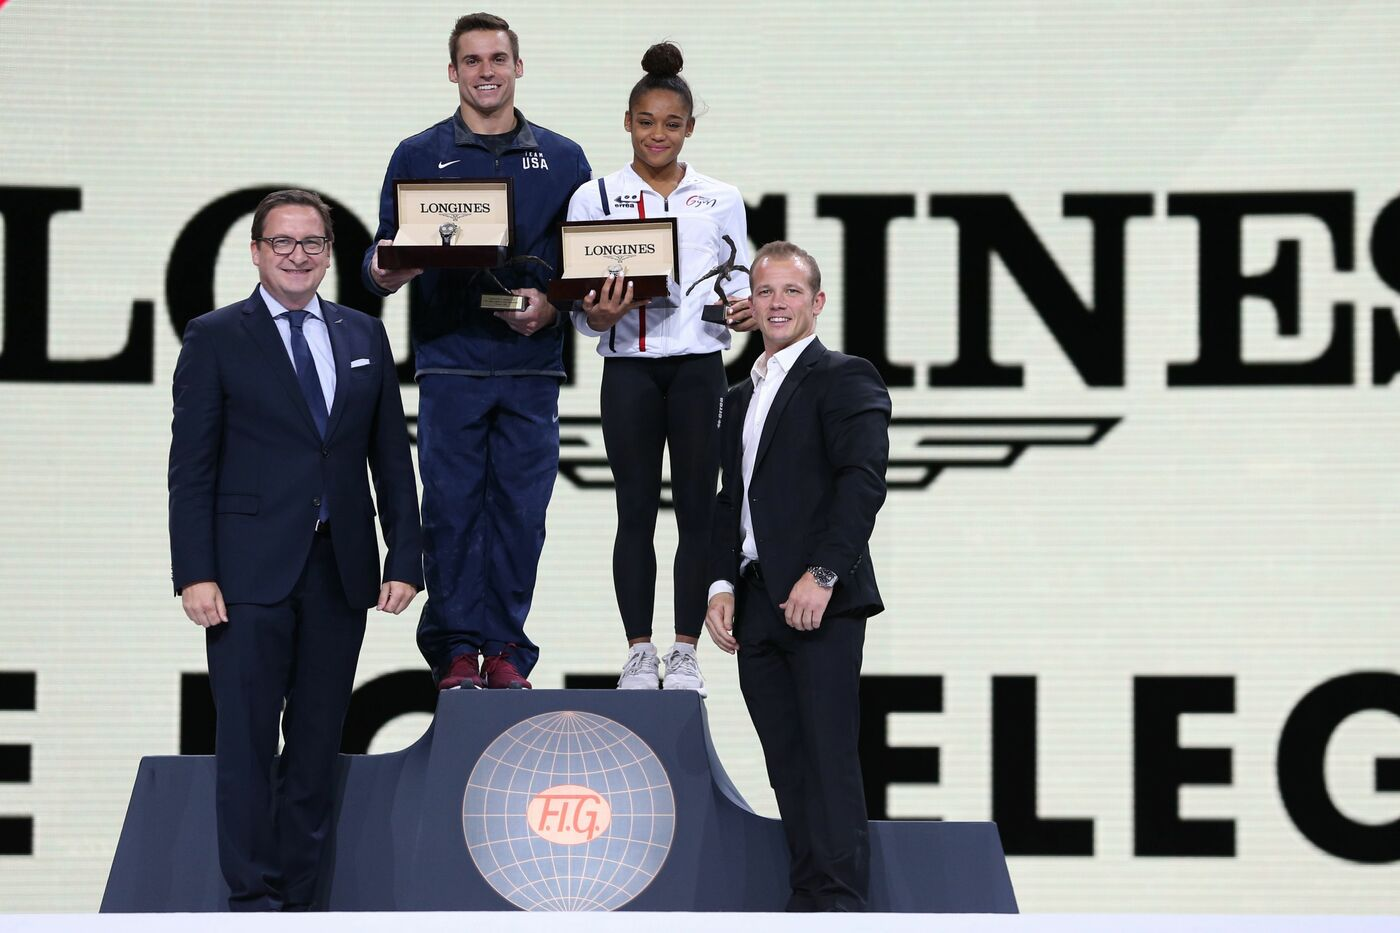 Longines Gymnastics Event: France's Melanie de Jesus dos Santos and USA's Samuel Mikulak were honored with the Longines Prize for Elegance at the 49th Artistic Gymnastics World Championships in Stuttgart 5